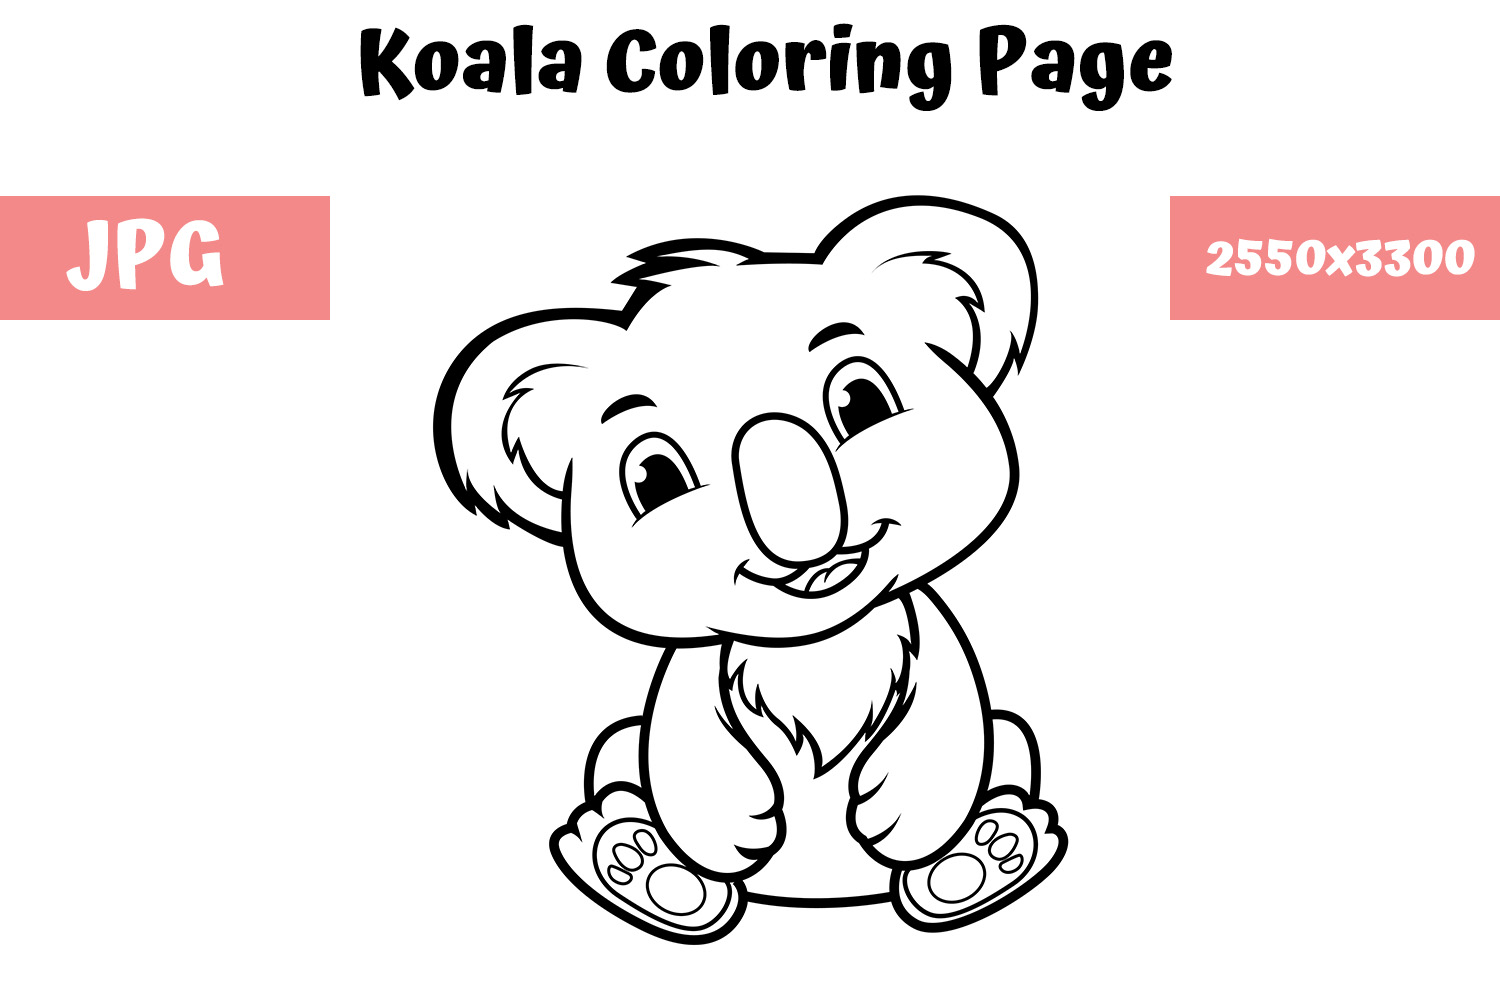 Download Free Coloring Book Page For Kids Koala Graphic By Mybeautifulfiles for Cricut Explore, Silhouette and other cutting machines.